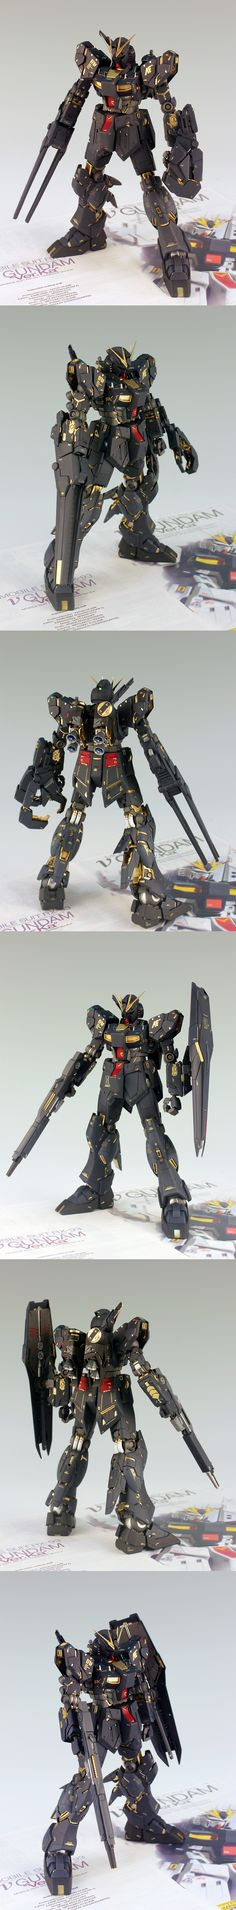 "MG 1/100 Nu Gundam Ver.Ka ""Bashee Destroy Custom"": Latest Work by [Team Sky] TORY. Full Photoreview (WIP too) Wallpaper Size Images 